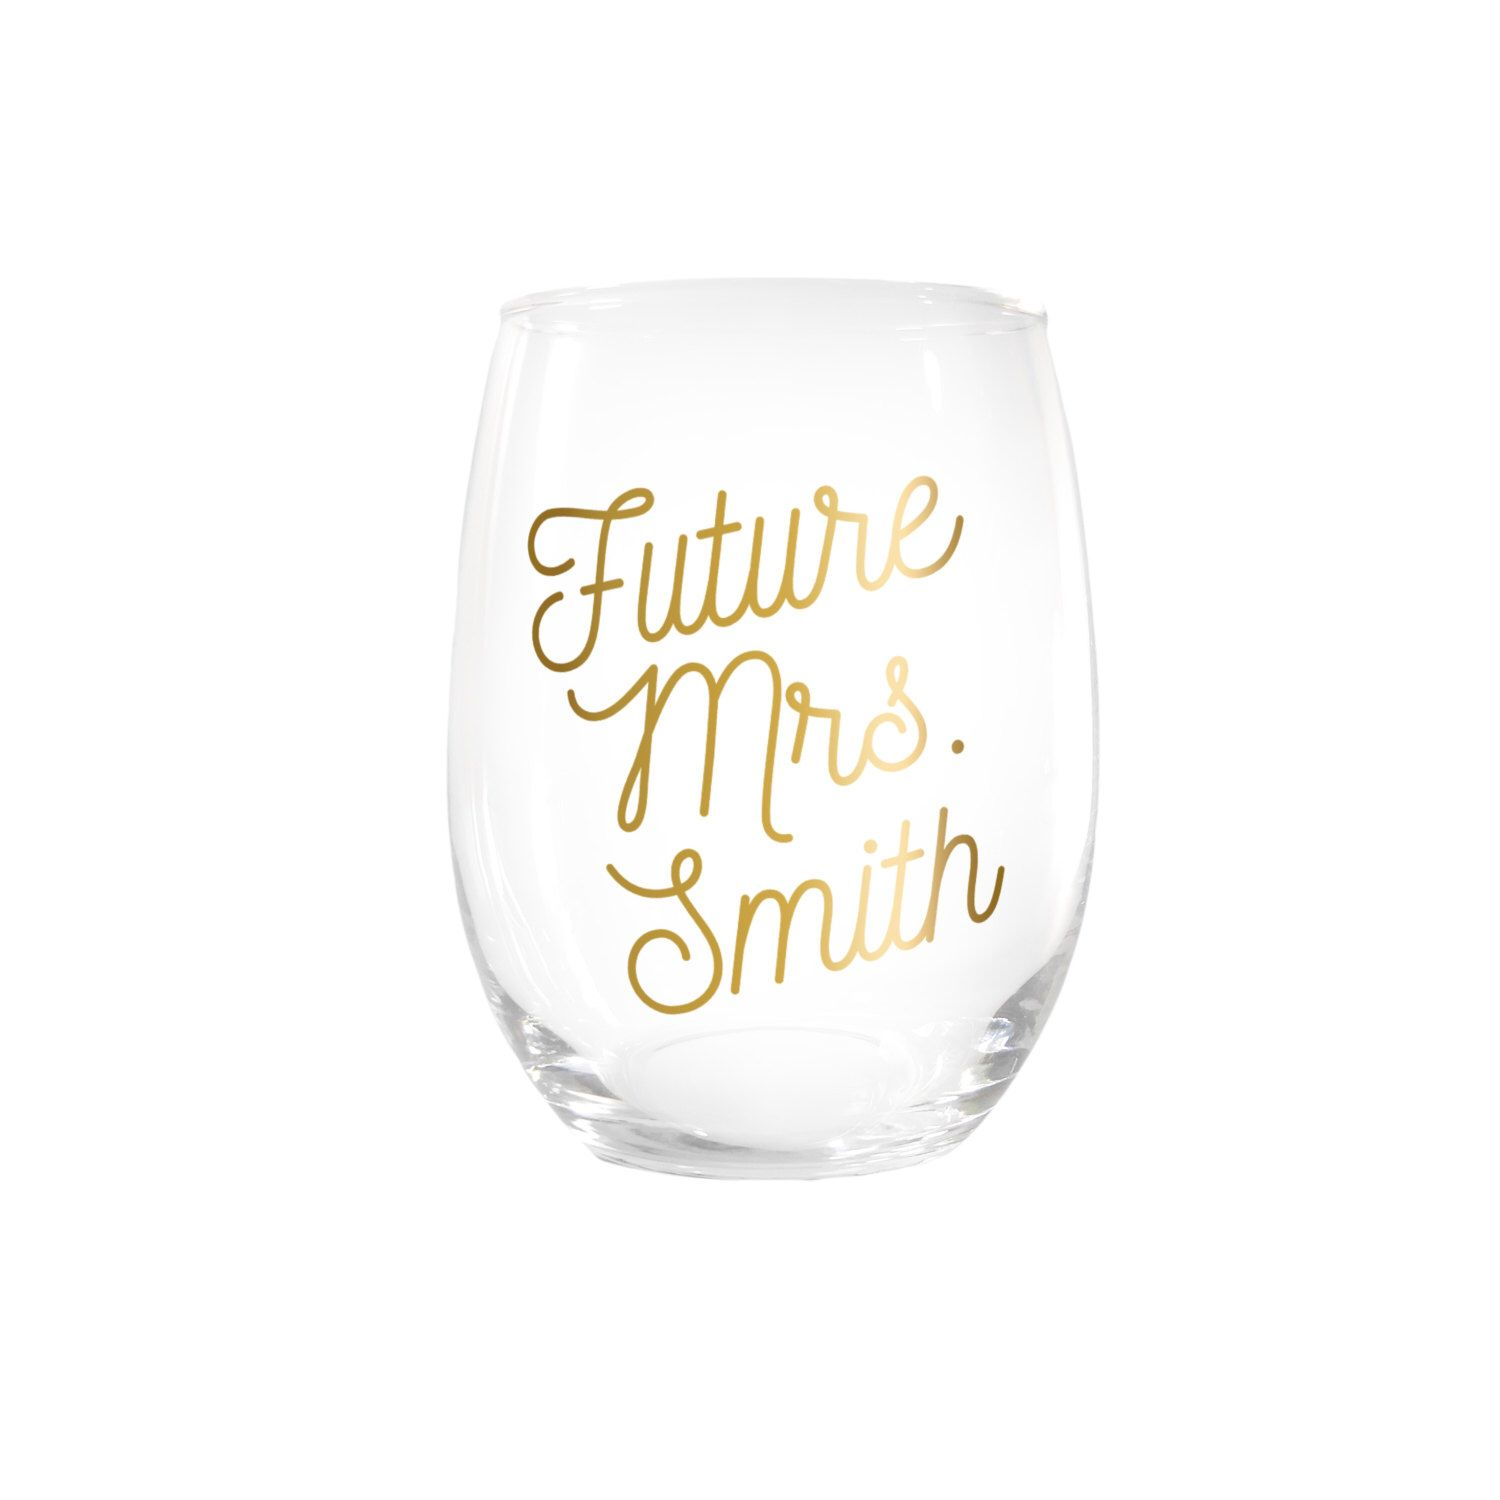 For day of bridal shower. Customized wine glass | Bridal shower ...